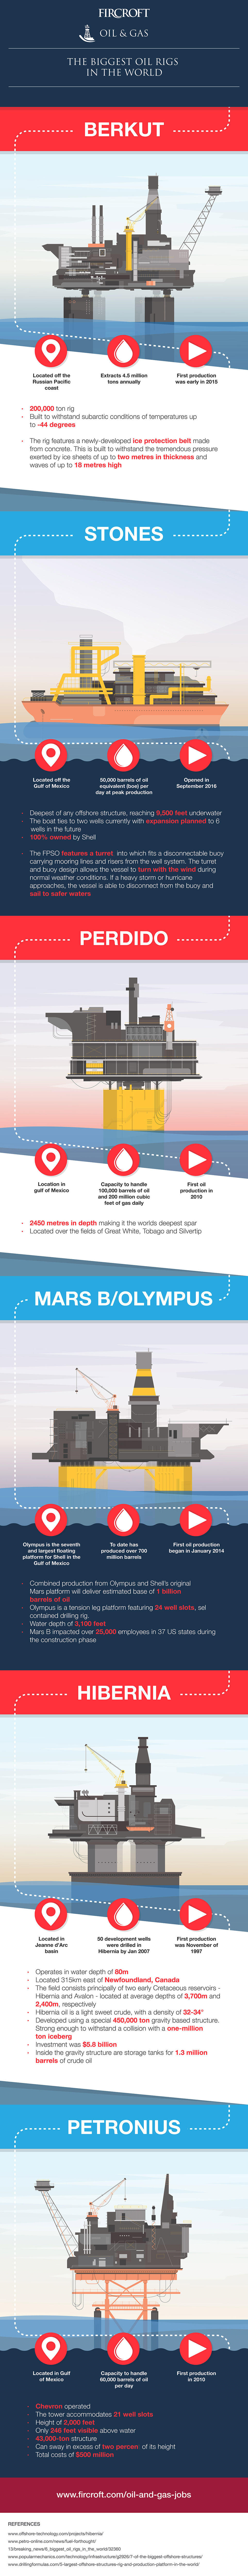 Biggest Oil Rigs in the World Infographic Elbowroom Graphics